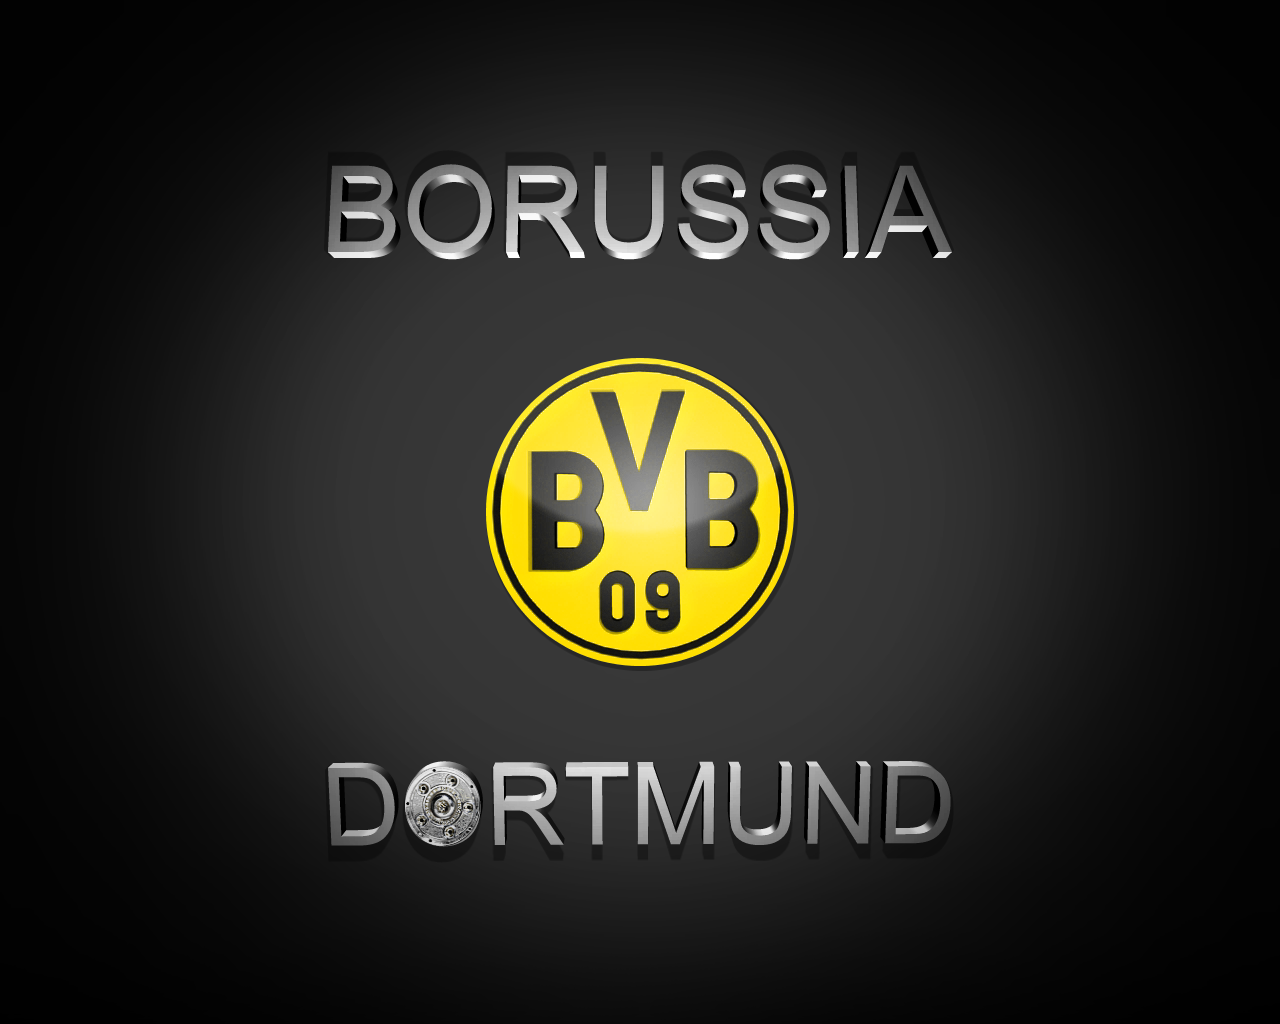 trololo blogg: Wallpaper Bvb 09